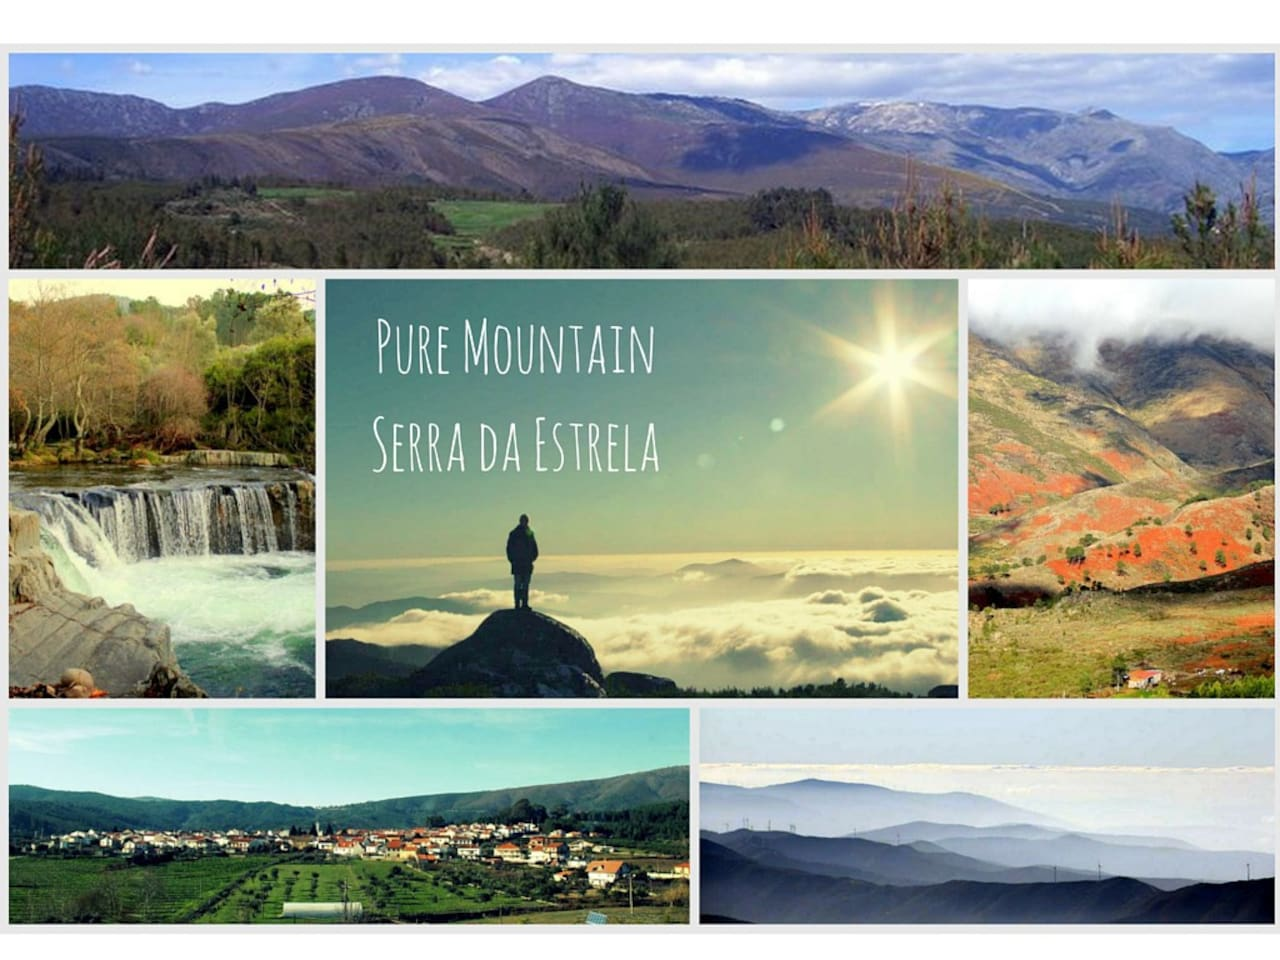 Pure Mountain, is what you can expect by visiting this cute village near Serra da Estrela.